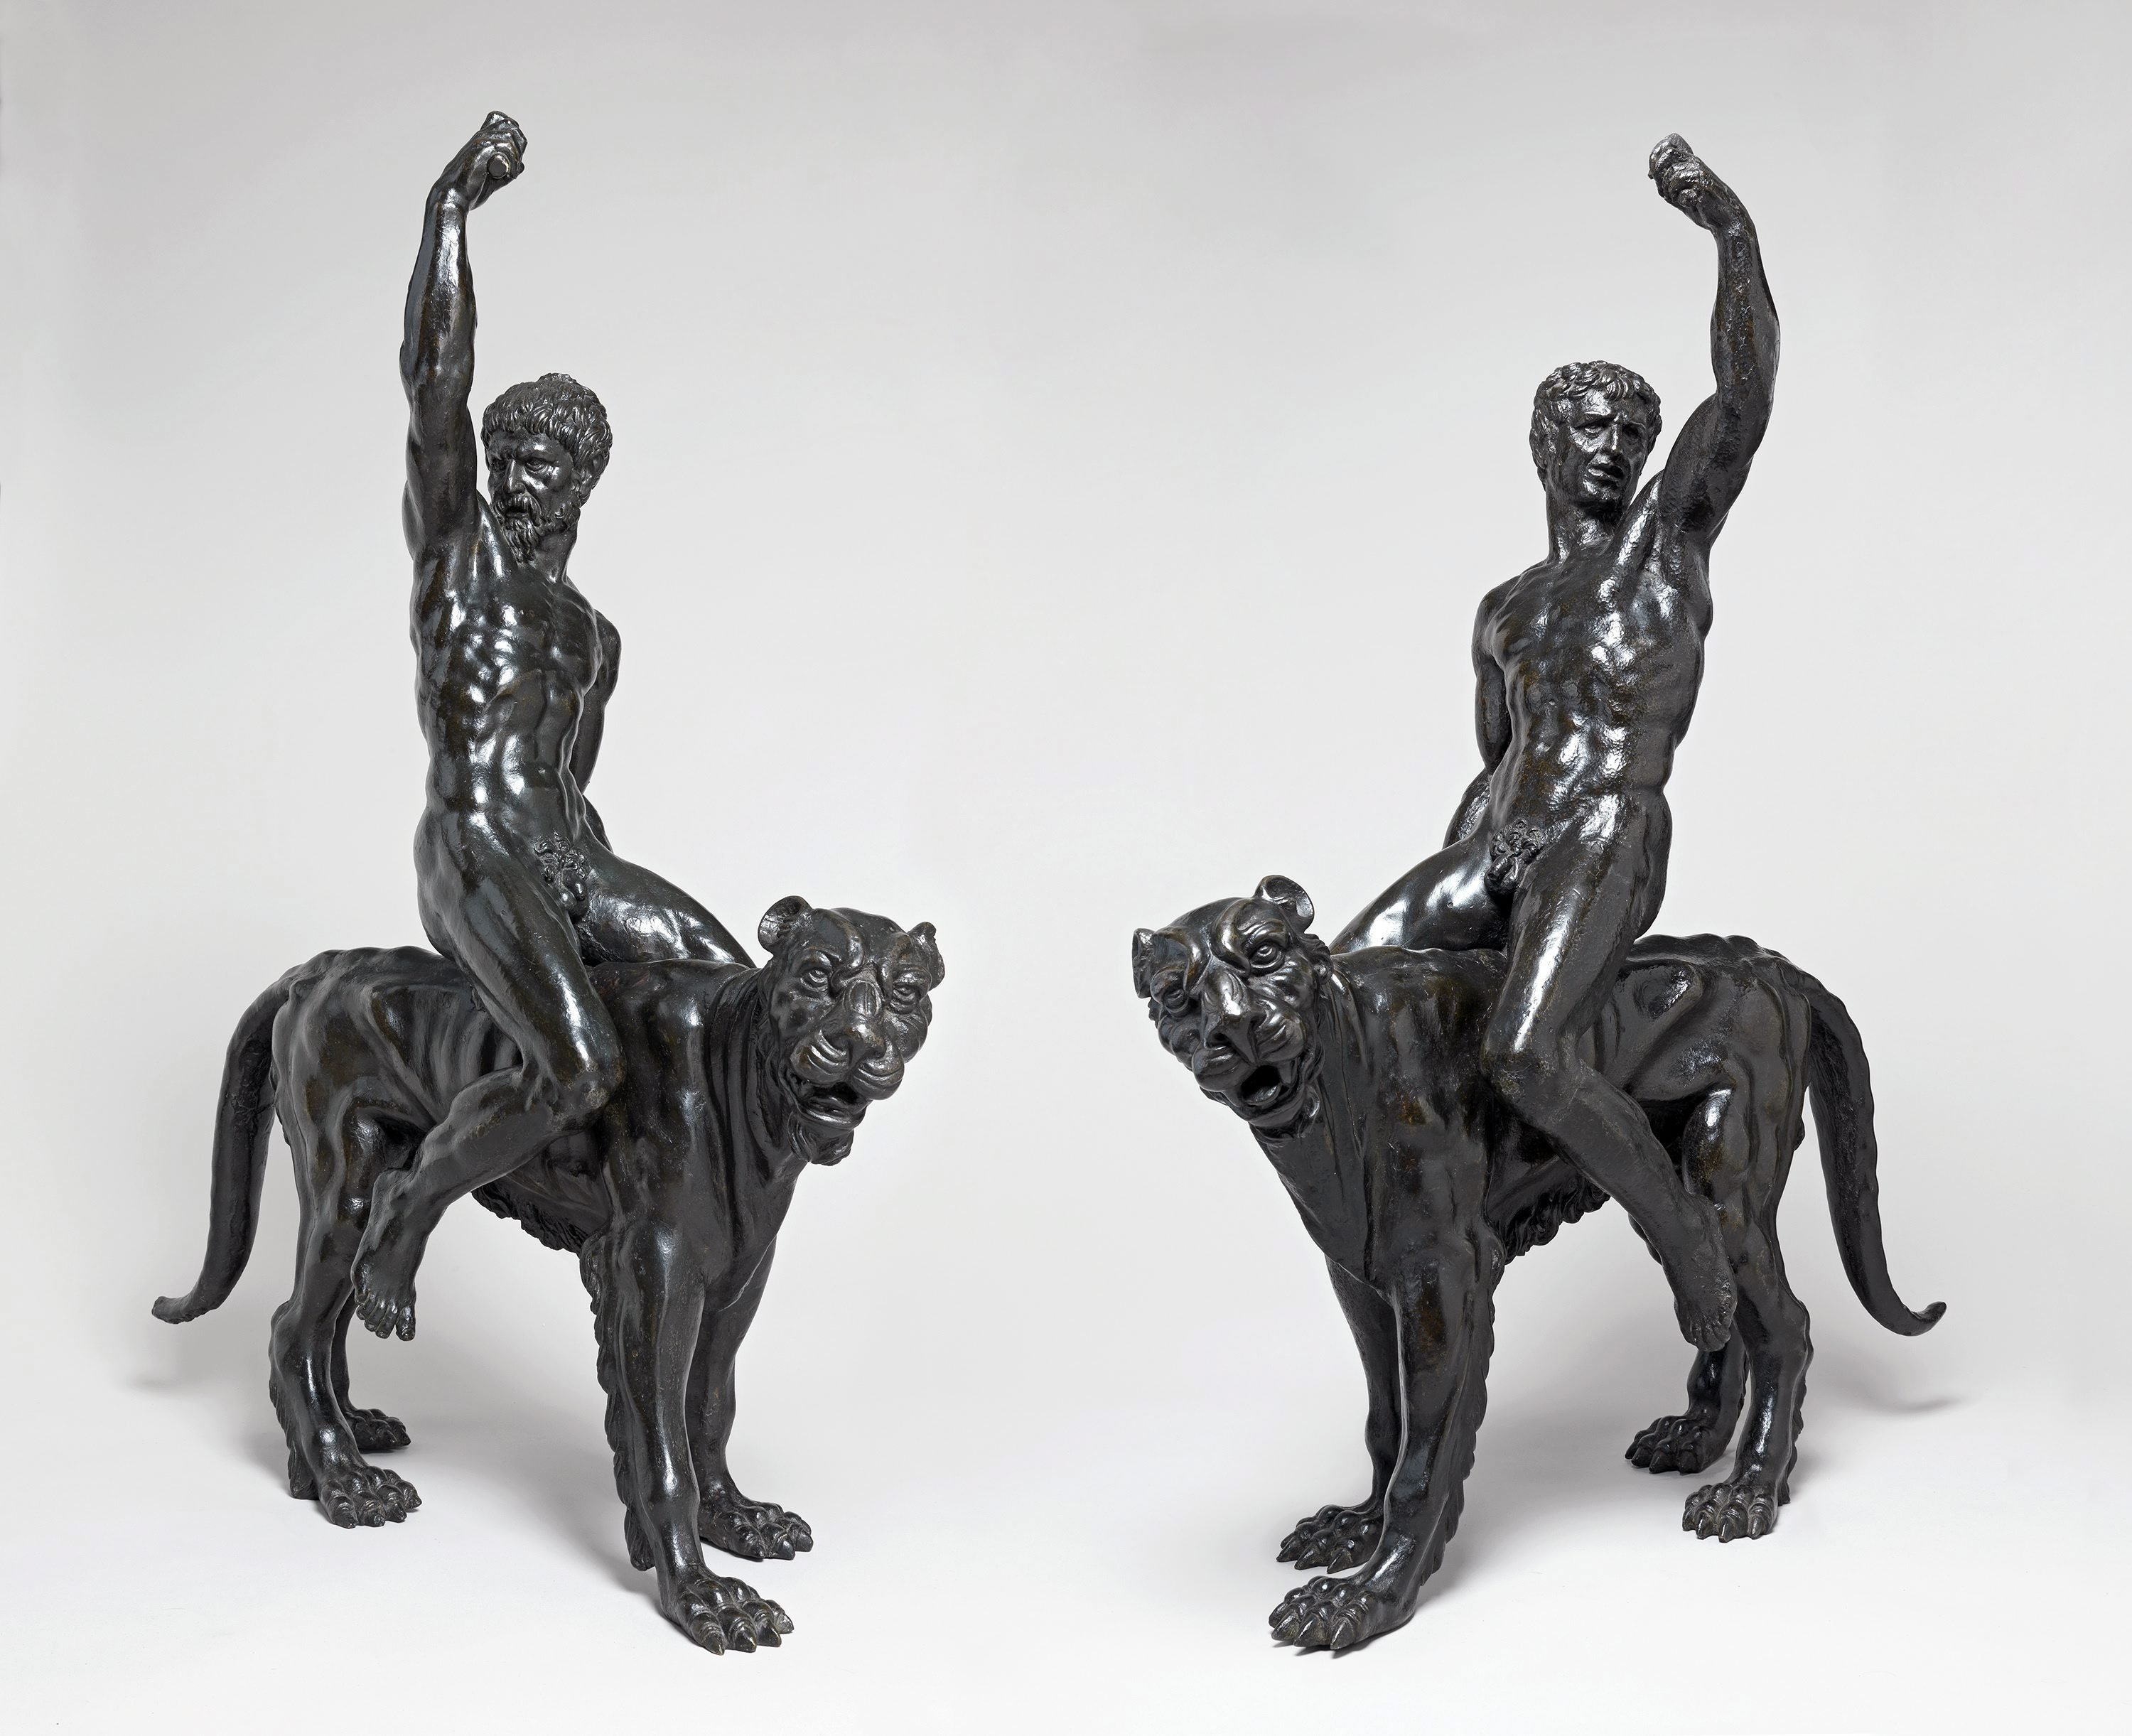 Two bronzes allegedly created by Italian sculptor Michelangelo provided by the Fitzmuseum and University of Cambridge on Feb. 2, 2015.